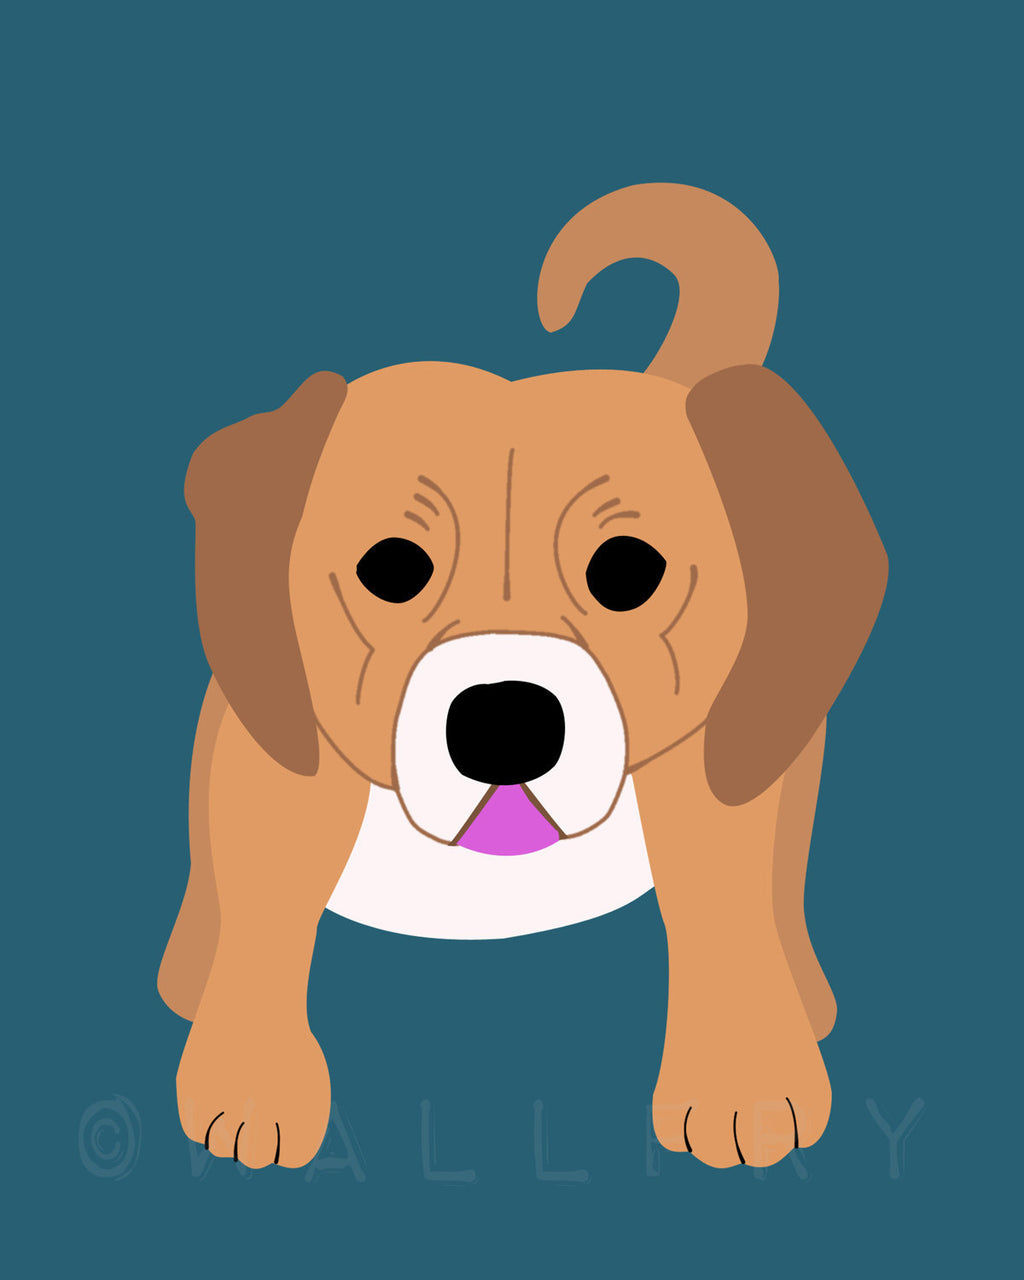 Puggle print. Dog nursery artwork for baby & kids room decor. Custom colors, turquoise teal and tan art by WallFry